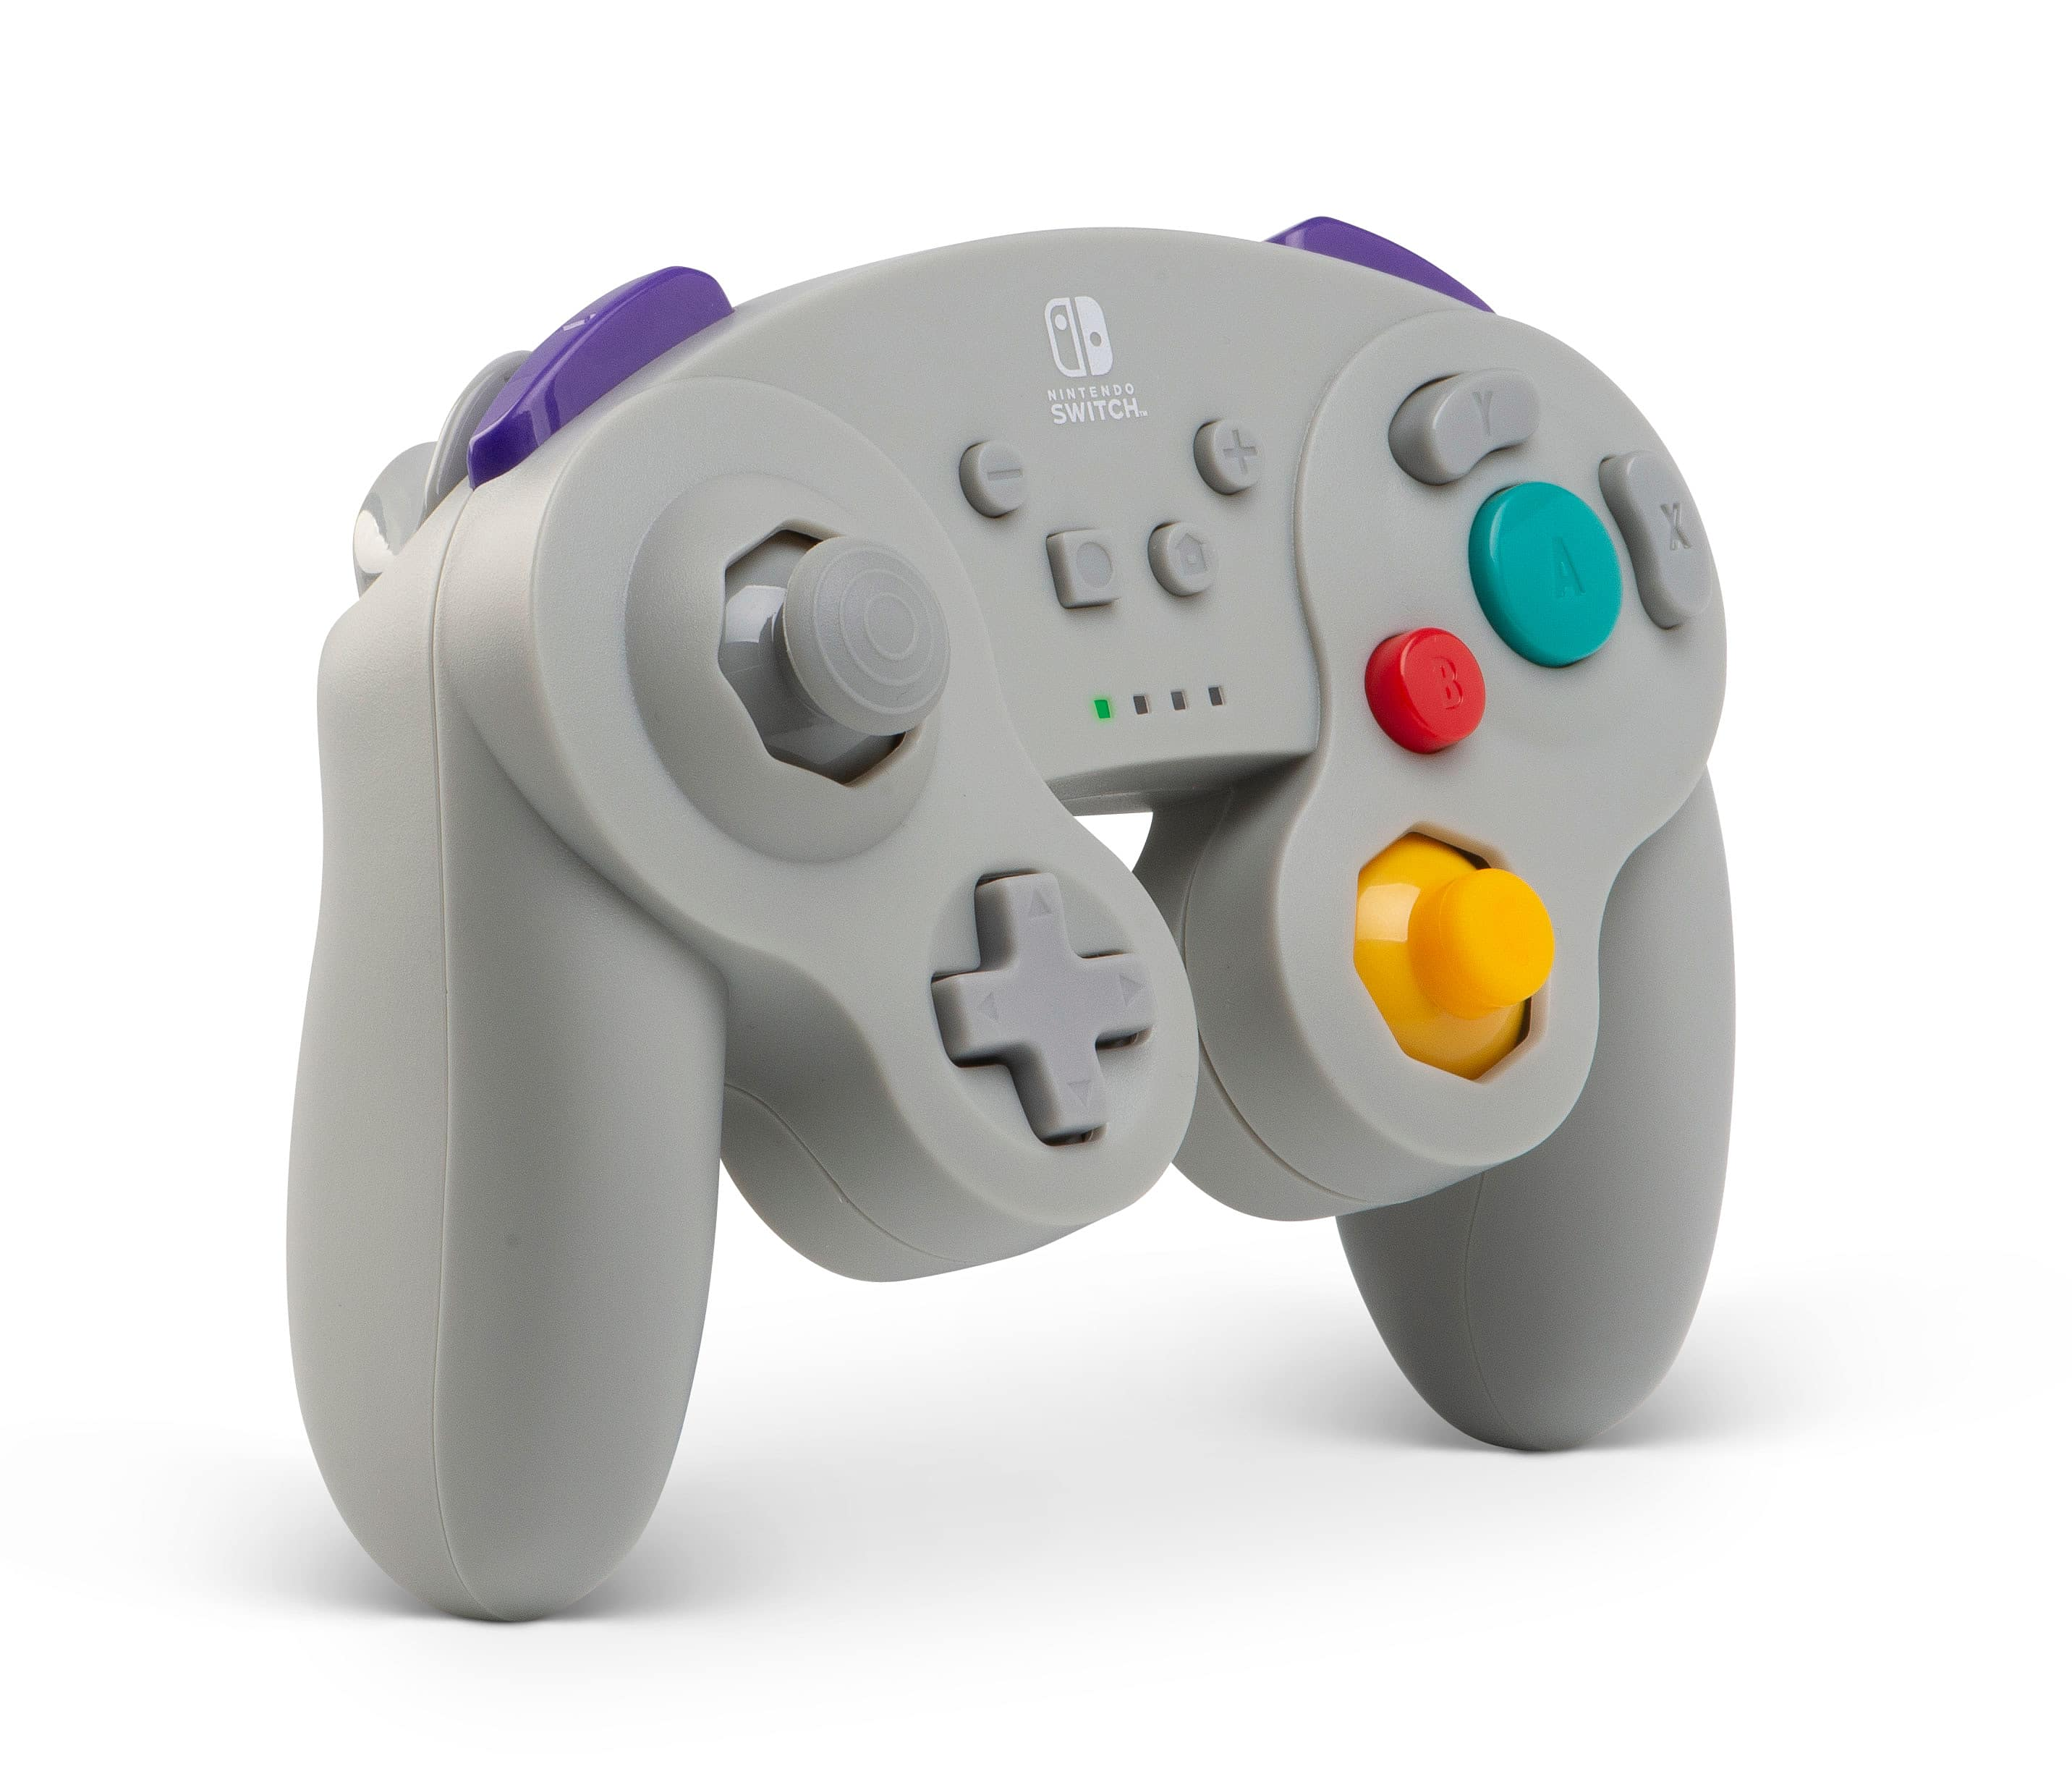 Product Super Smash Bros Ultimate With Powera Wireless Controller Nintendo Switch Grey Bundle 2game 2amiibo For Only At Game Screen Shot 2